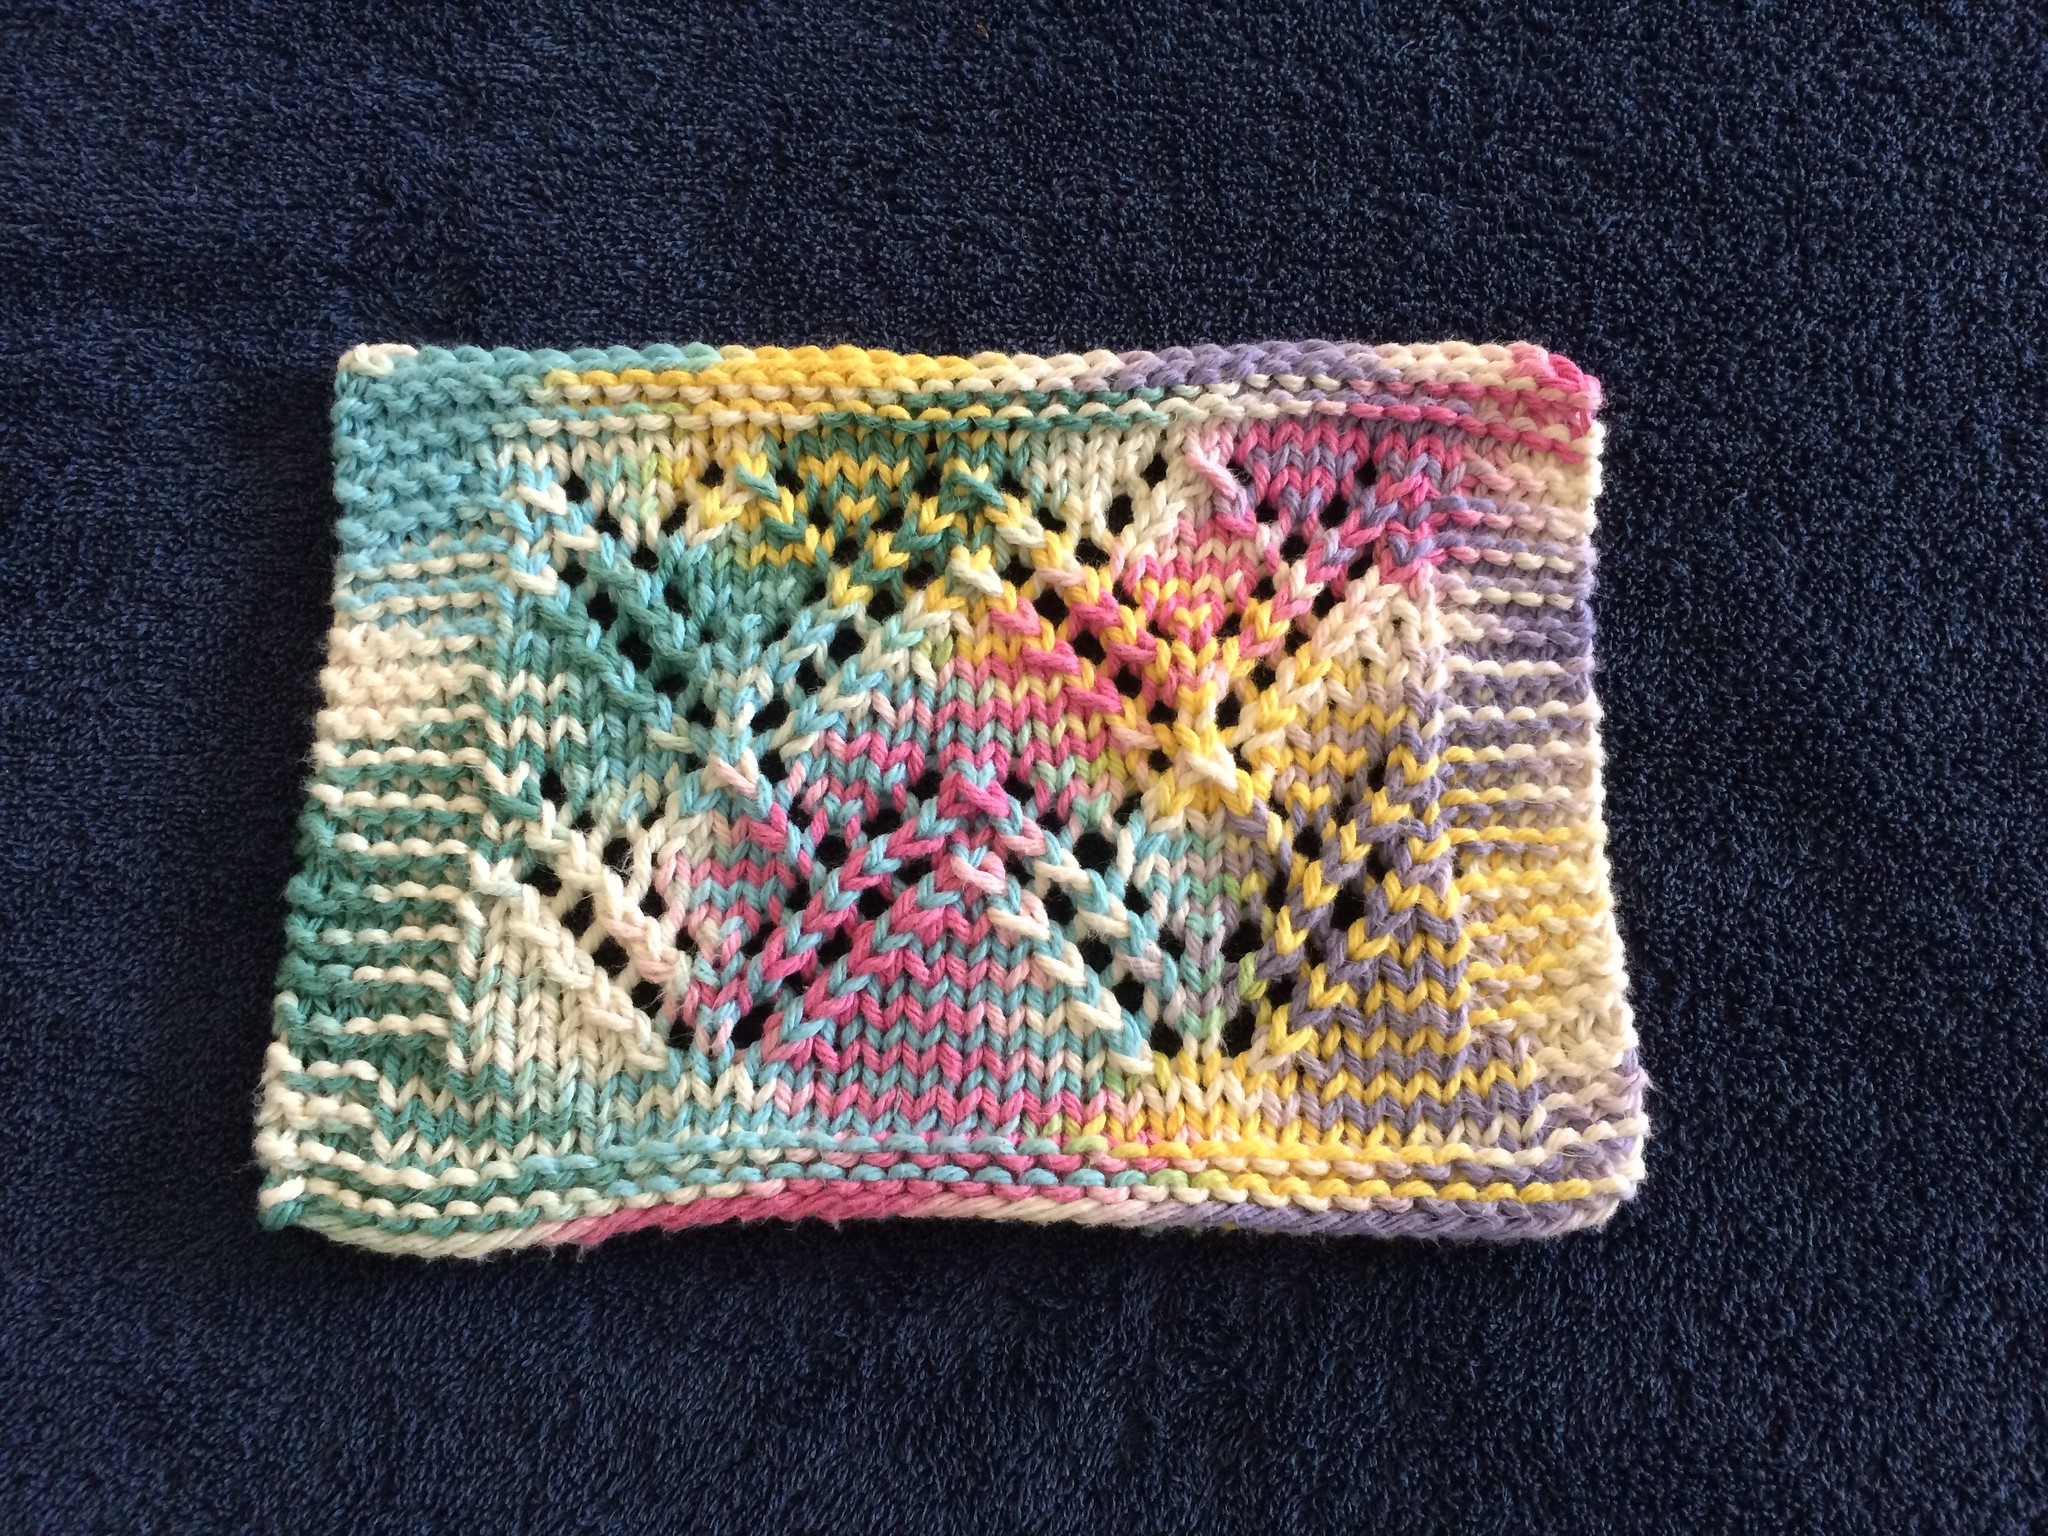 Summer Breeze dishcloth for Ravellenics Games August 2016